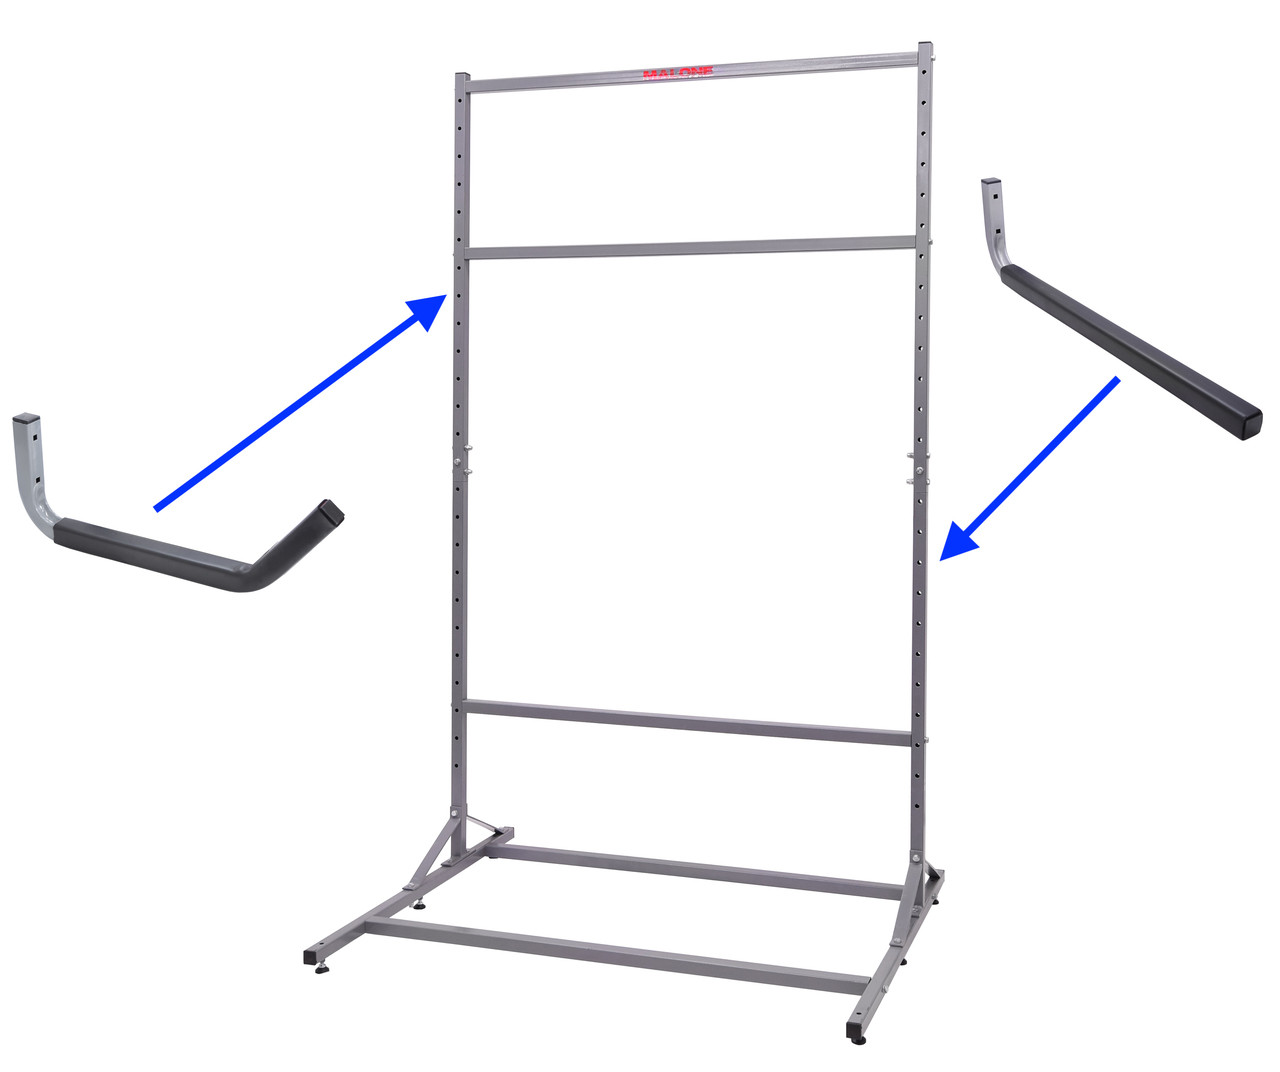 Add-on Arms for SUP, Kayak, Surf Storage | For Malone Freestanding Racks